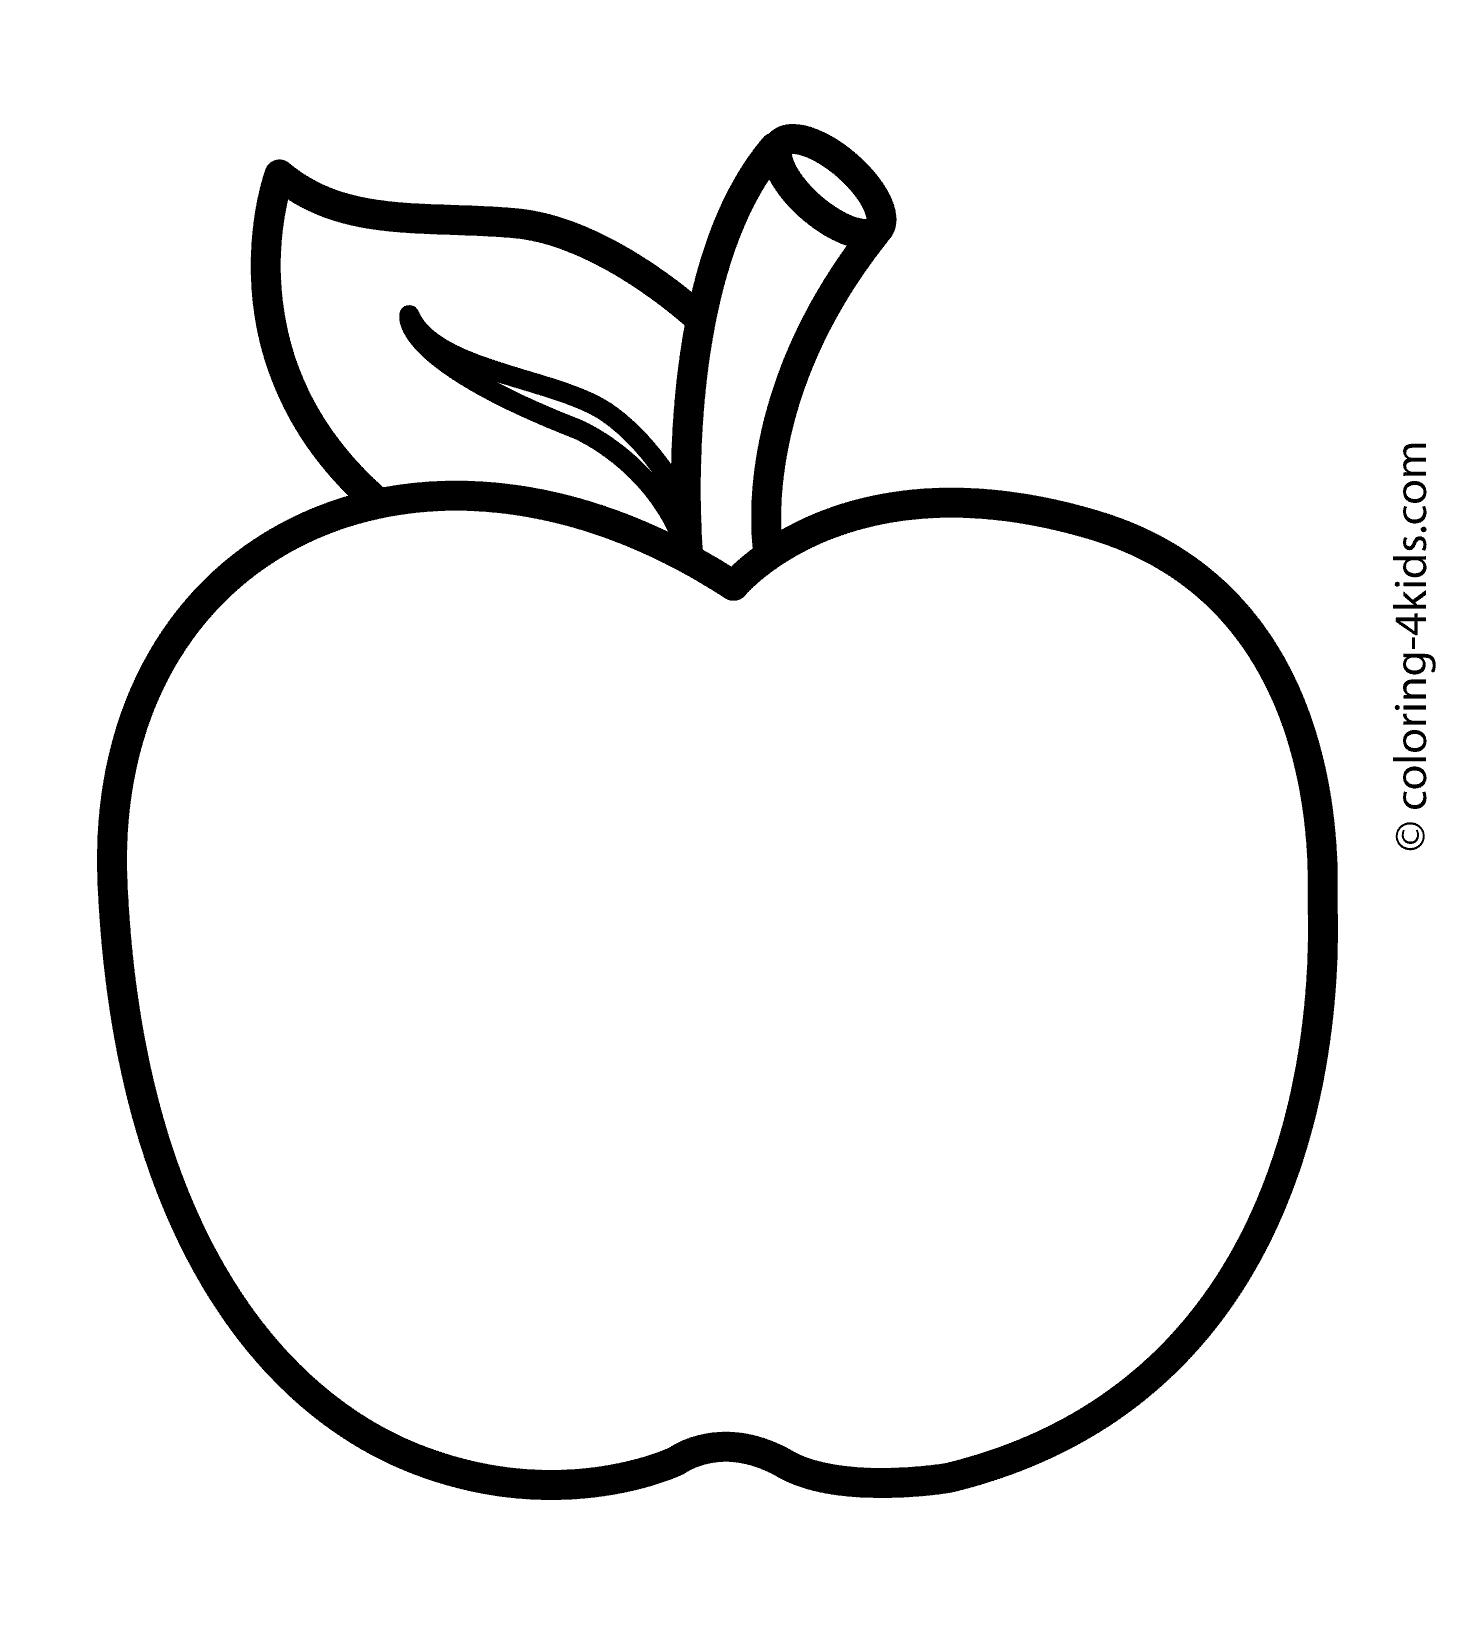 pictures of apples to color apple coloring pages to print apples pictures to of color